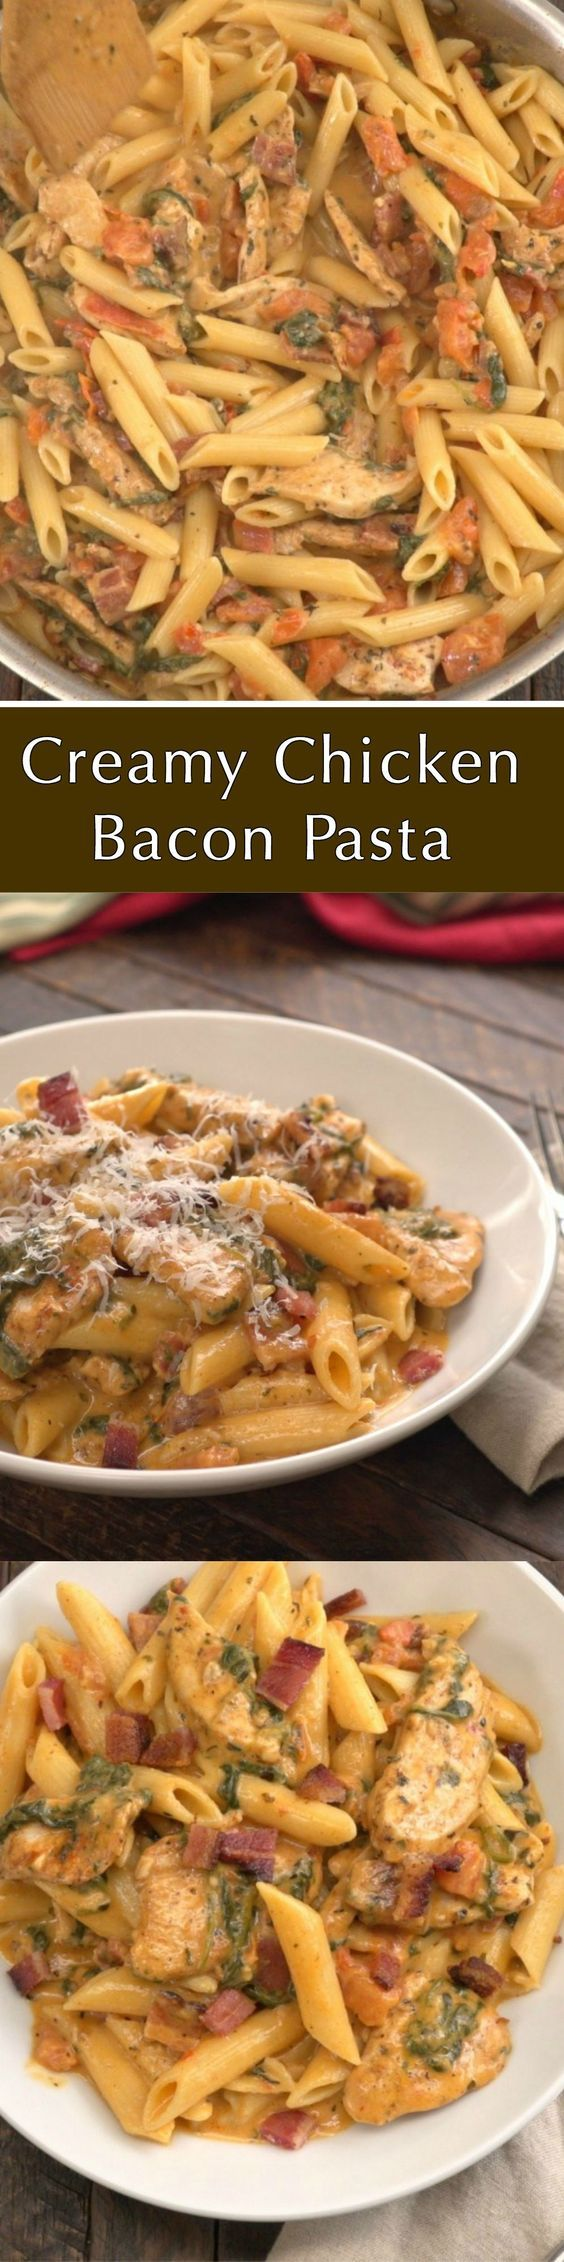 This rich creamy pasta with chicken and bacon is comfort food at it's best.